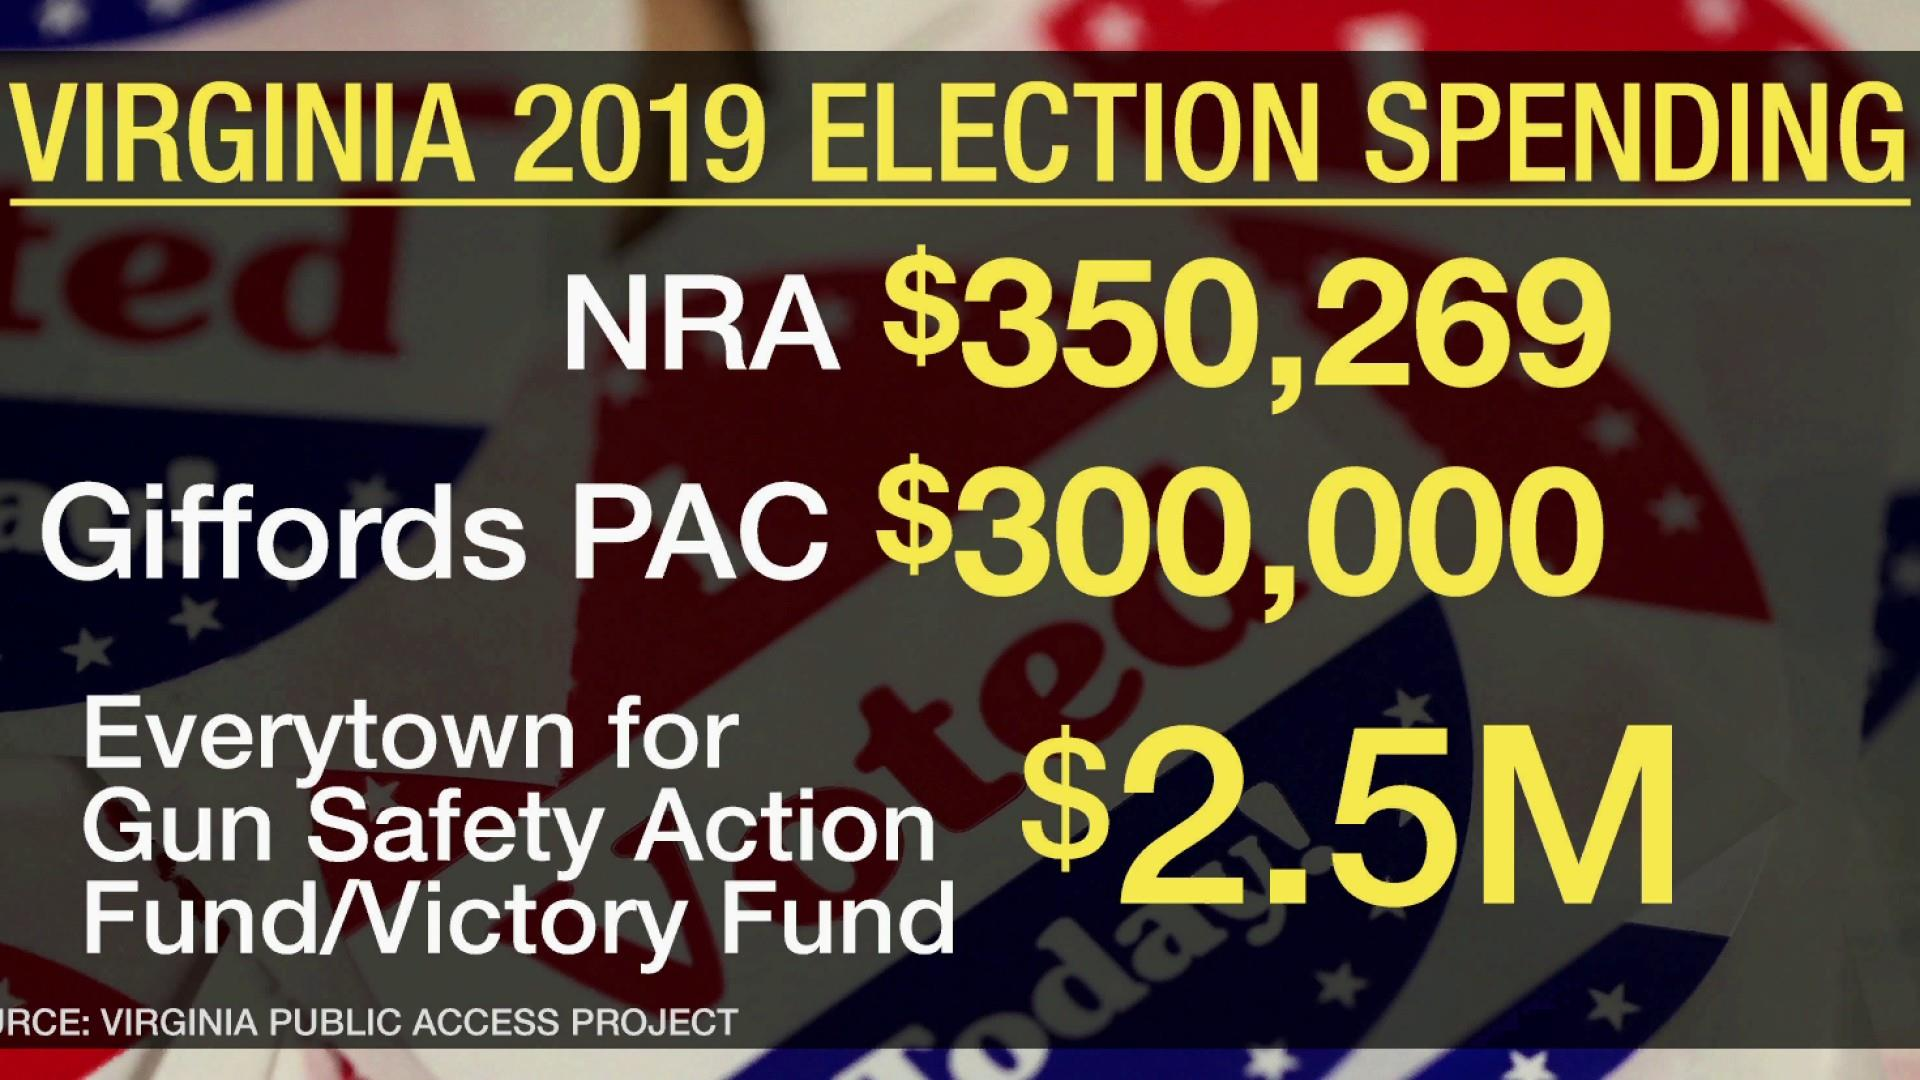 Gun control groups outspent NRA 8-to-1 in Virginia elections